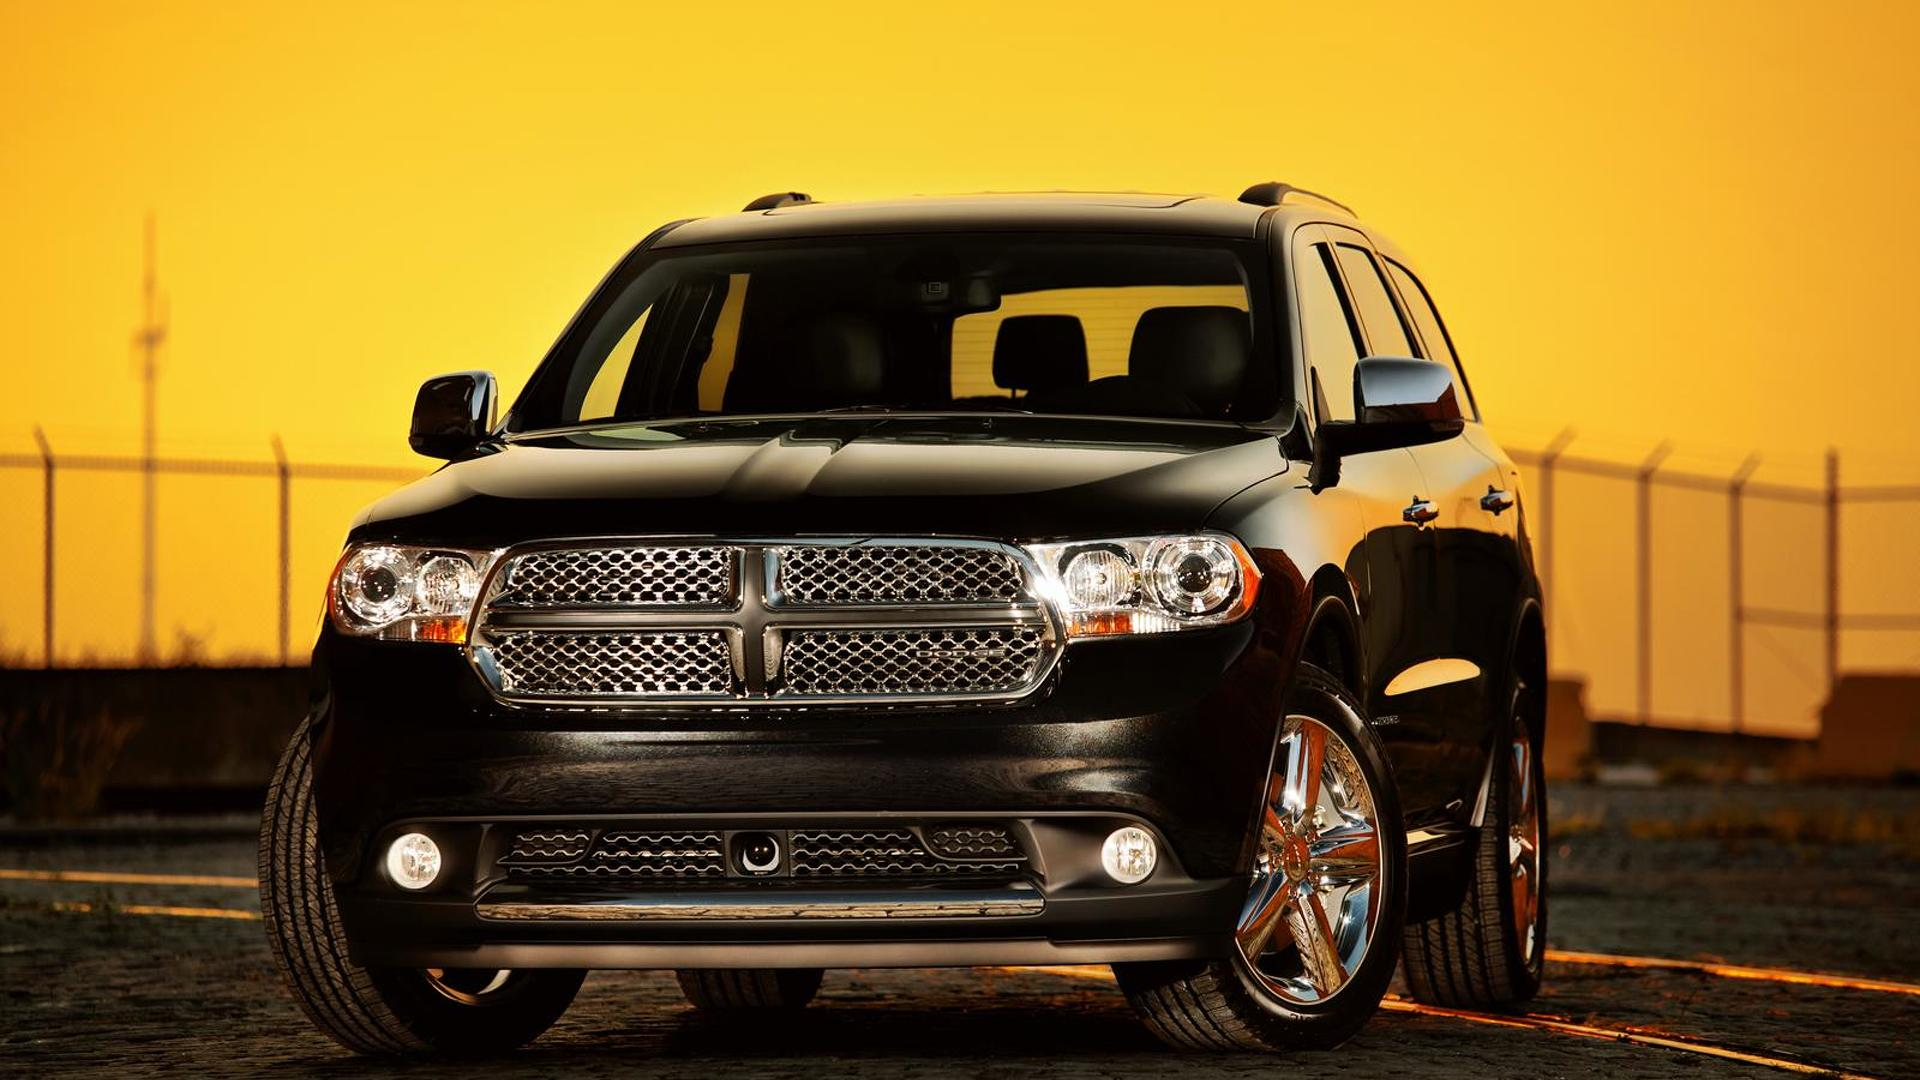 2011 Dodge Durango revealed